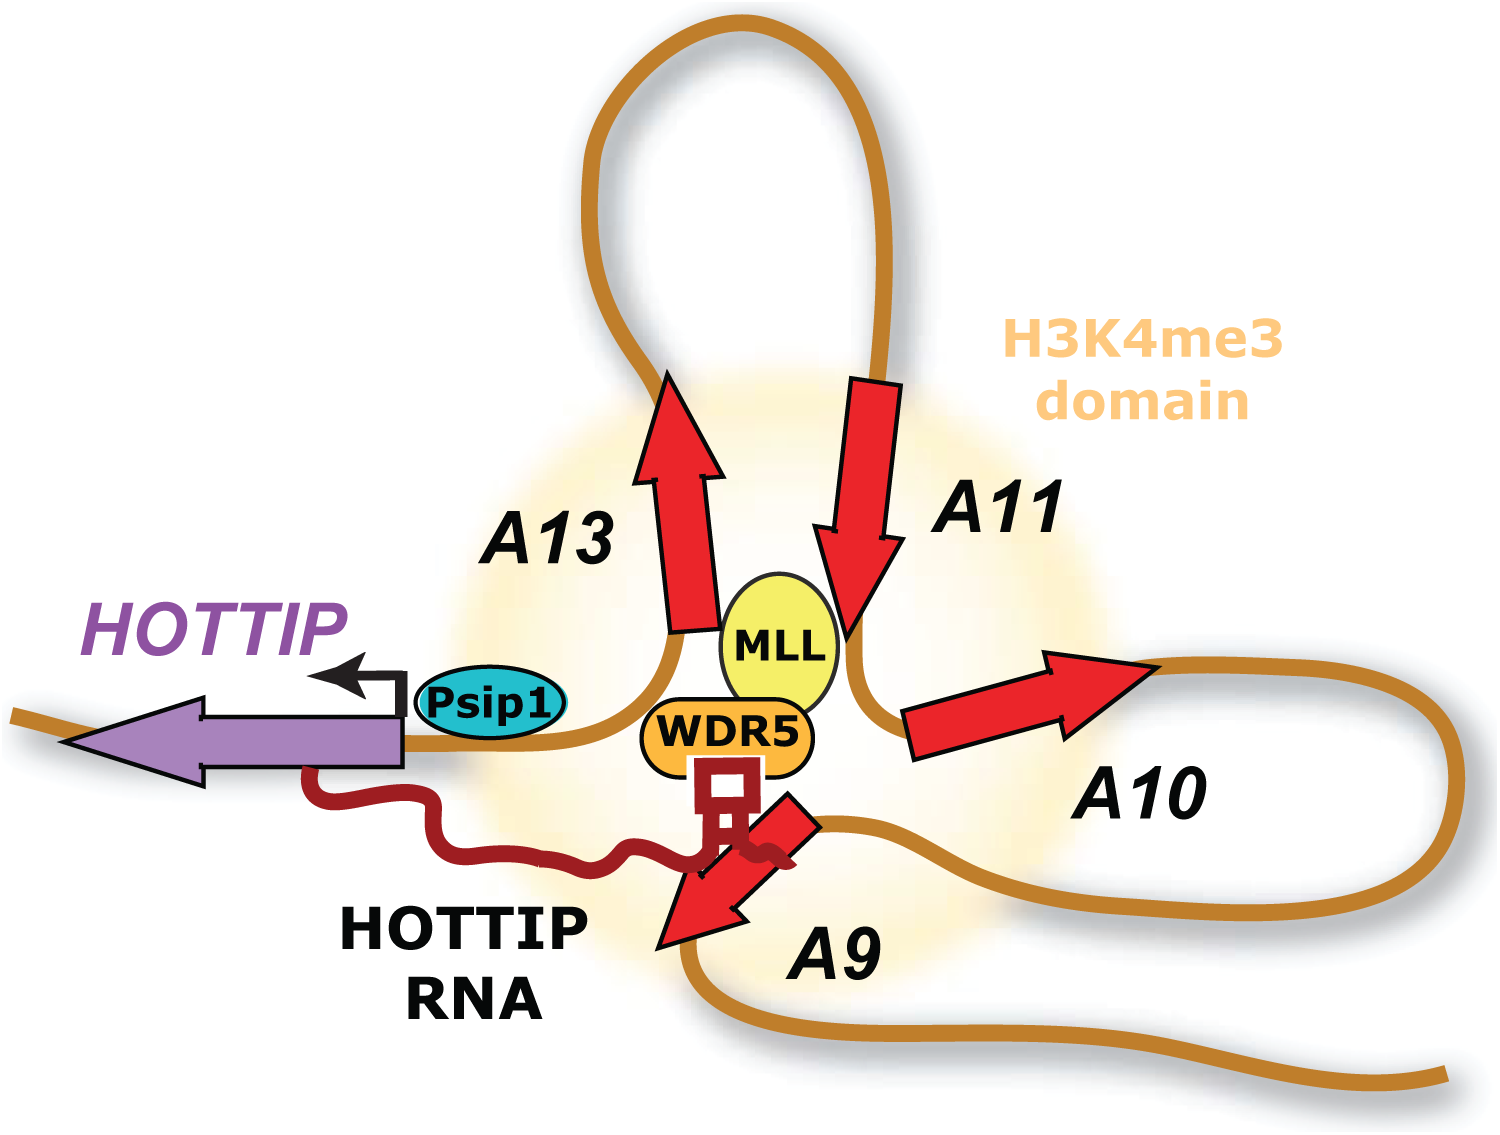 Model of positive cofactor 4 (PC4) and splicing factor 2 (SF2) interacting protein (Psip1) action.